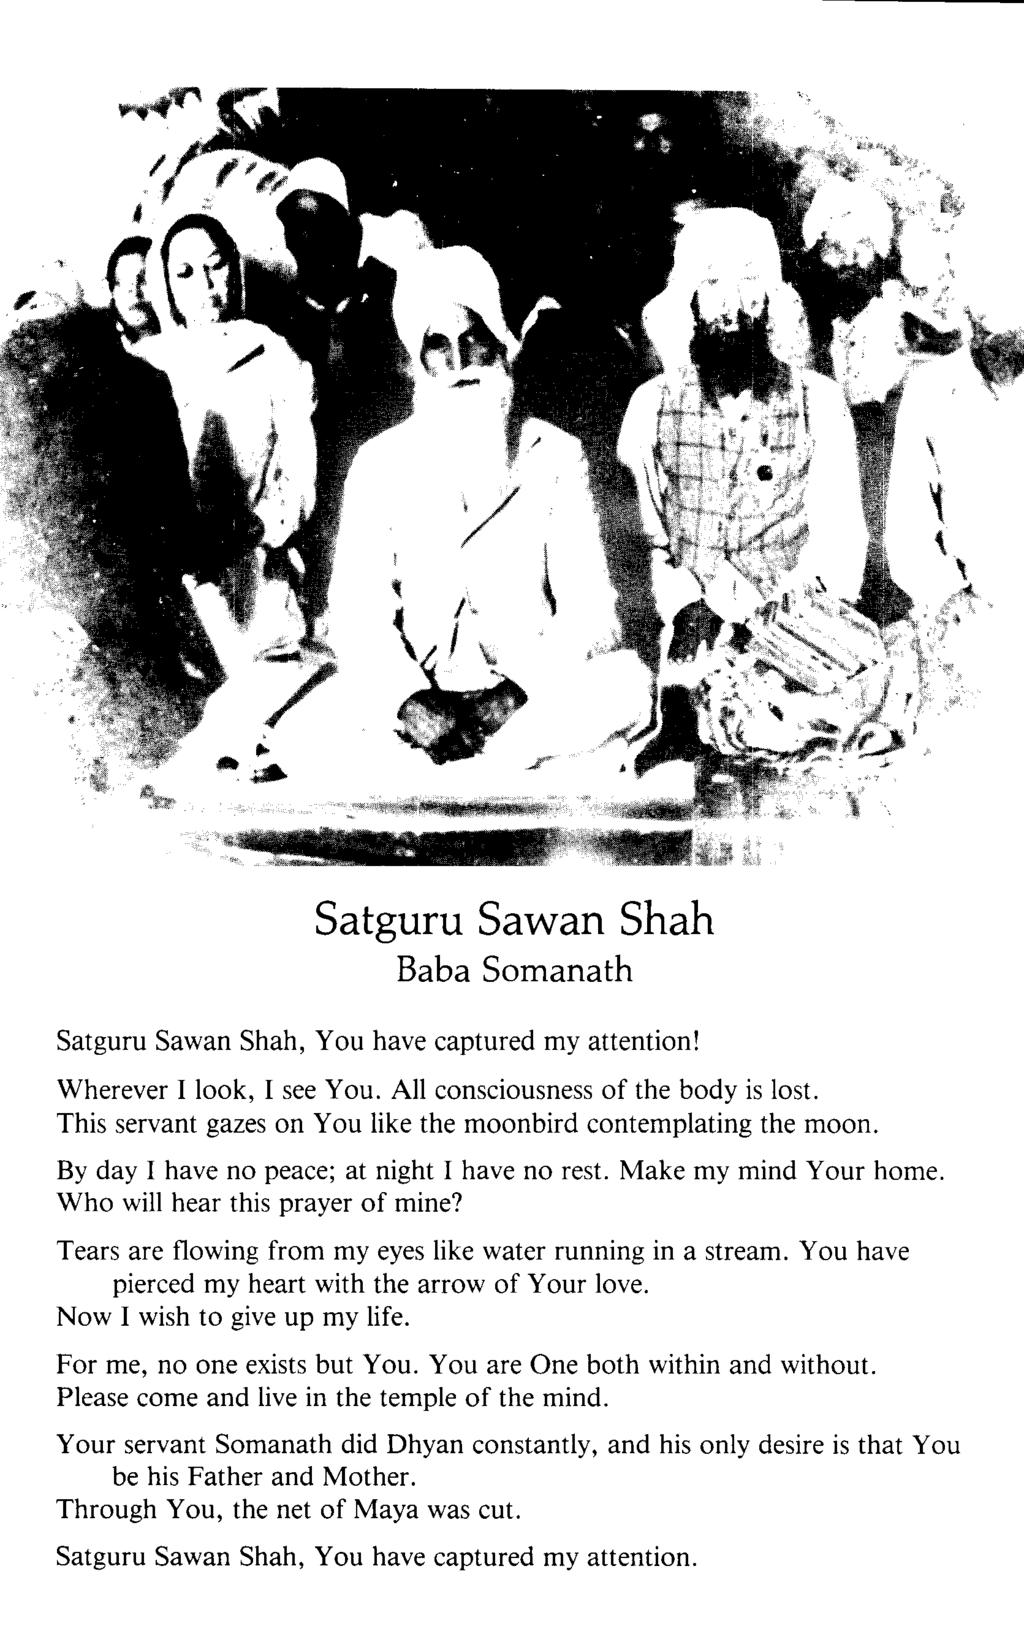 Satguru Sawan Shah Baba Somanath Satguru Sawan Shah, You have captured my attention! Wherever I look, I see You. All consciousness of the body is lost.